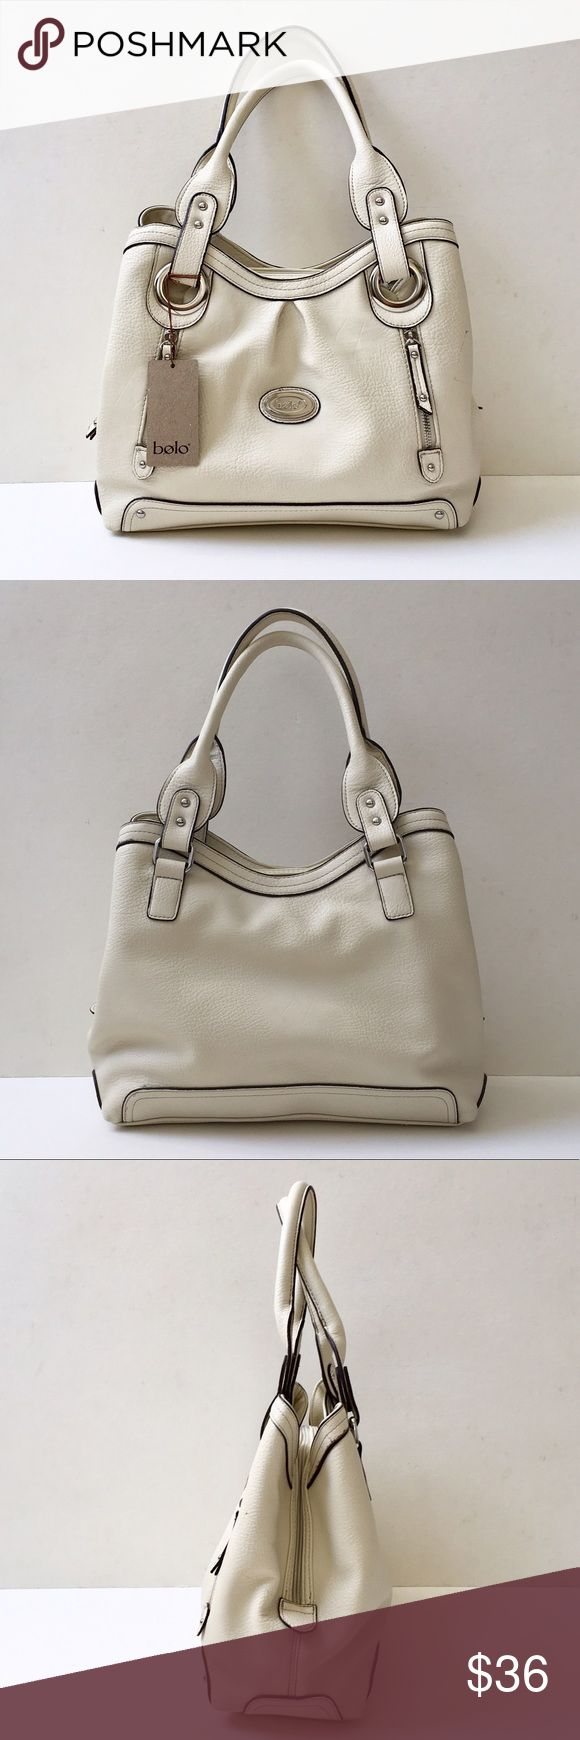 Bolo Pebble Textured Neutral Shoulder Bag, NWT Pleather. 19 inches long including straps. Body o  bag: 13 inches wide x 11 inches high x 5.5 inches deep. Three compartments. Center zip with two snap openings at sides. Three interior pockets at center compartment. Colors: exterior is bone with black accents, lined in camel colored fabric. Roomy, holds a lot. Great neutral bag. Issue: See last pic...scratch or transfer of color, mark, perfect other than that. NWT. Bolo Bags Shoulder Bags